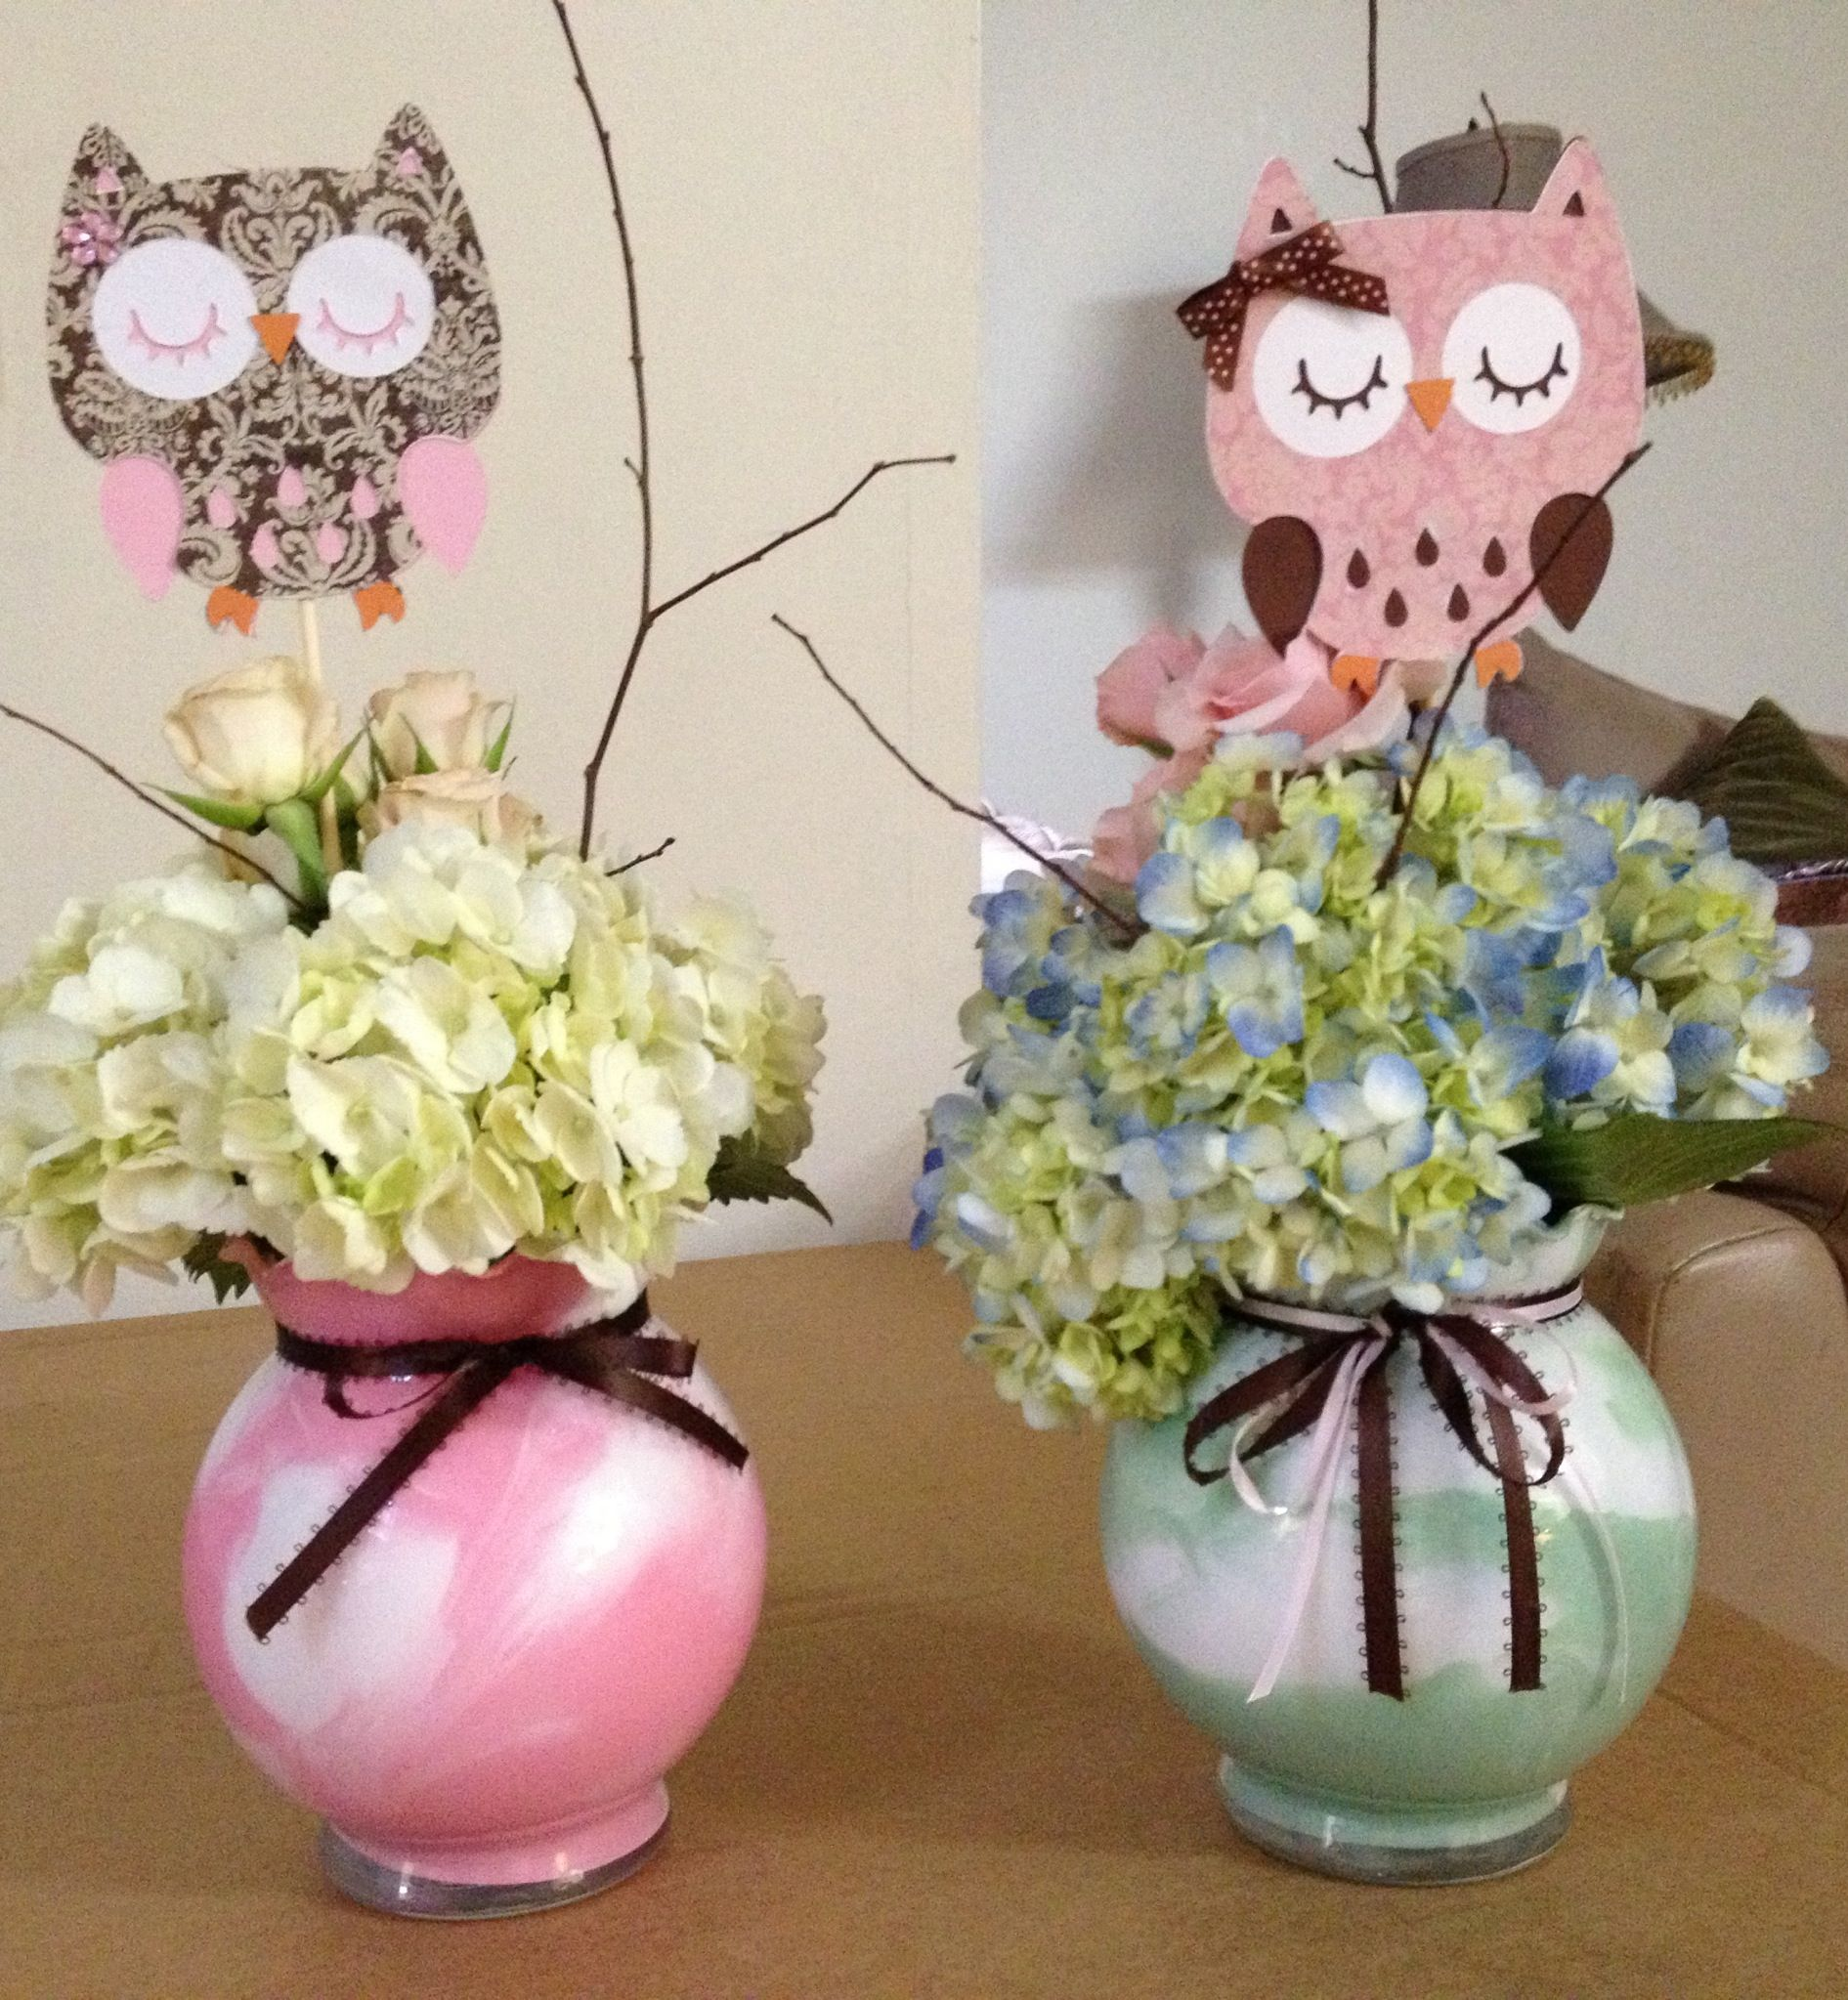 My centerpieces I made with chach21 owl babyshower decorations